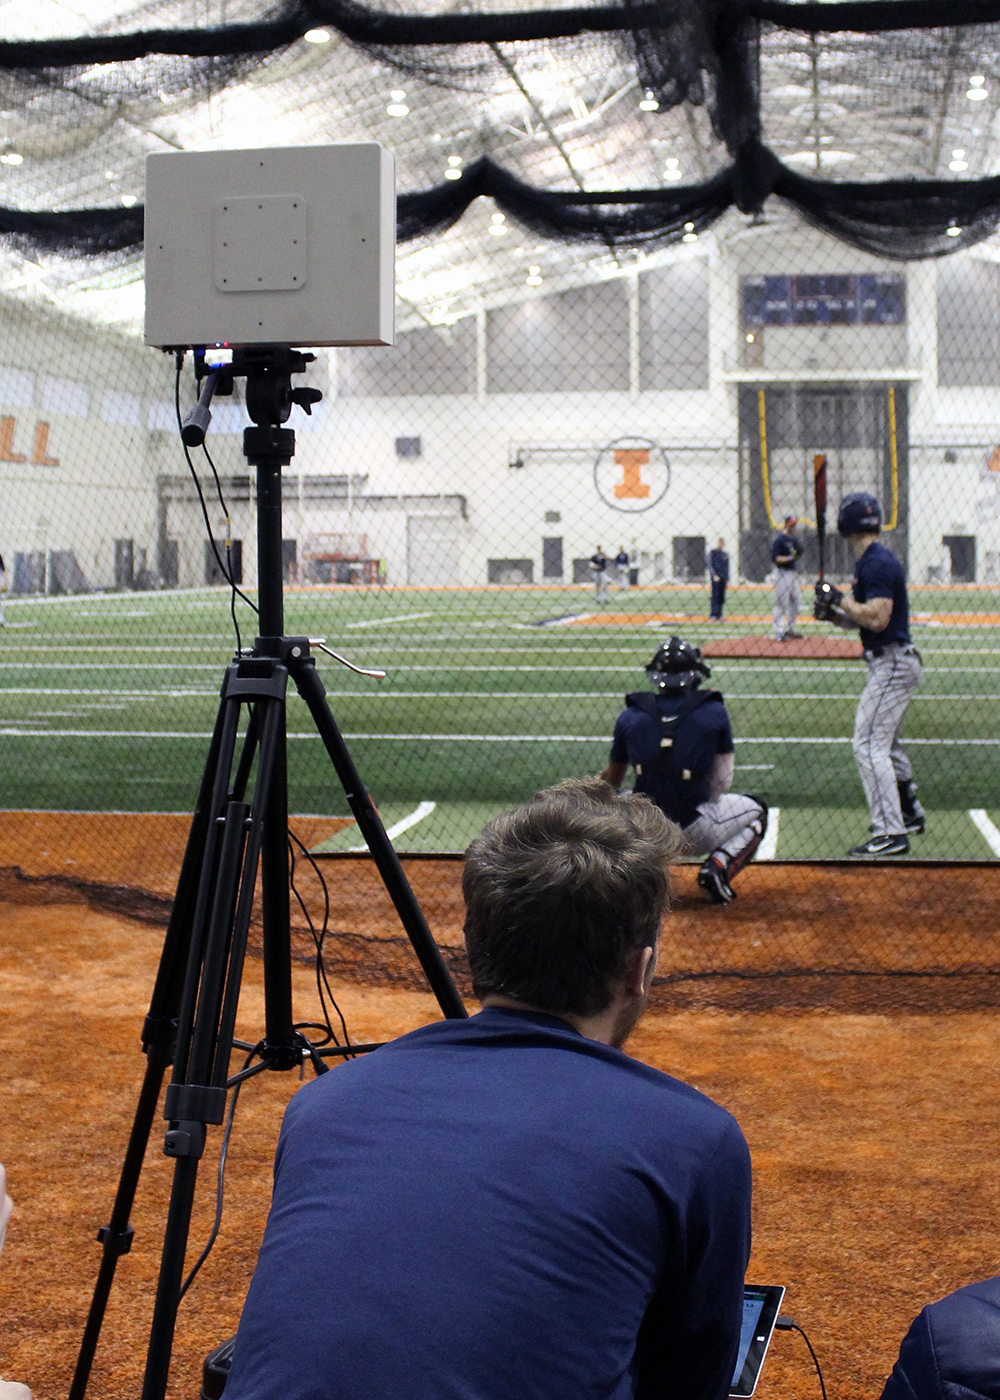 Charlie Young uses a FlightScope during a Fighting Illini Baseball practice. (Image courtesy of CS @ Illinois.)